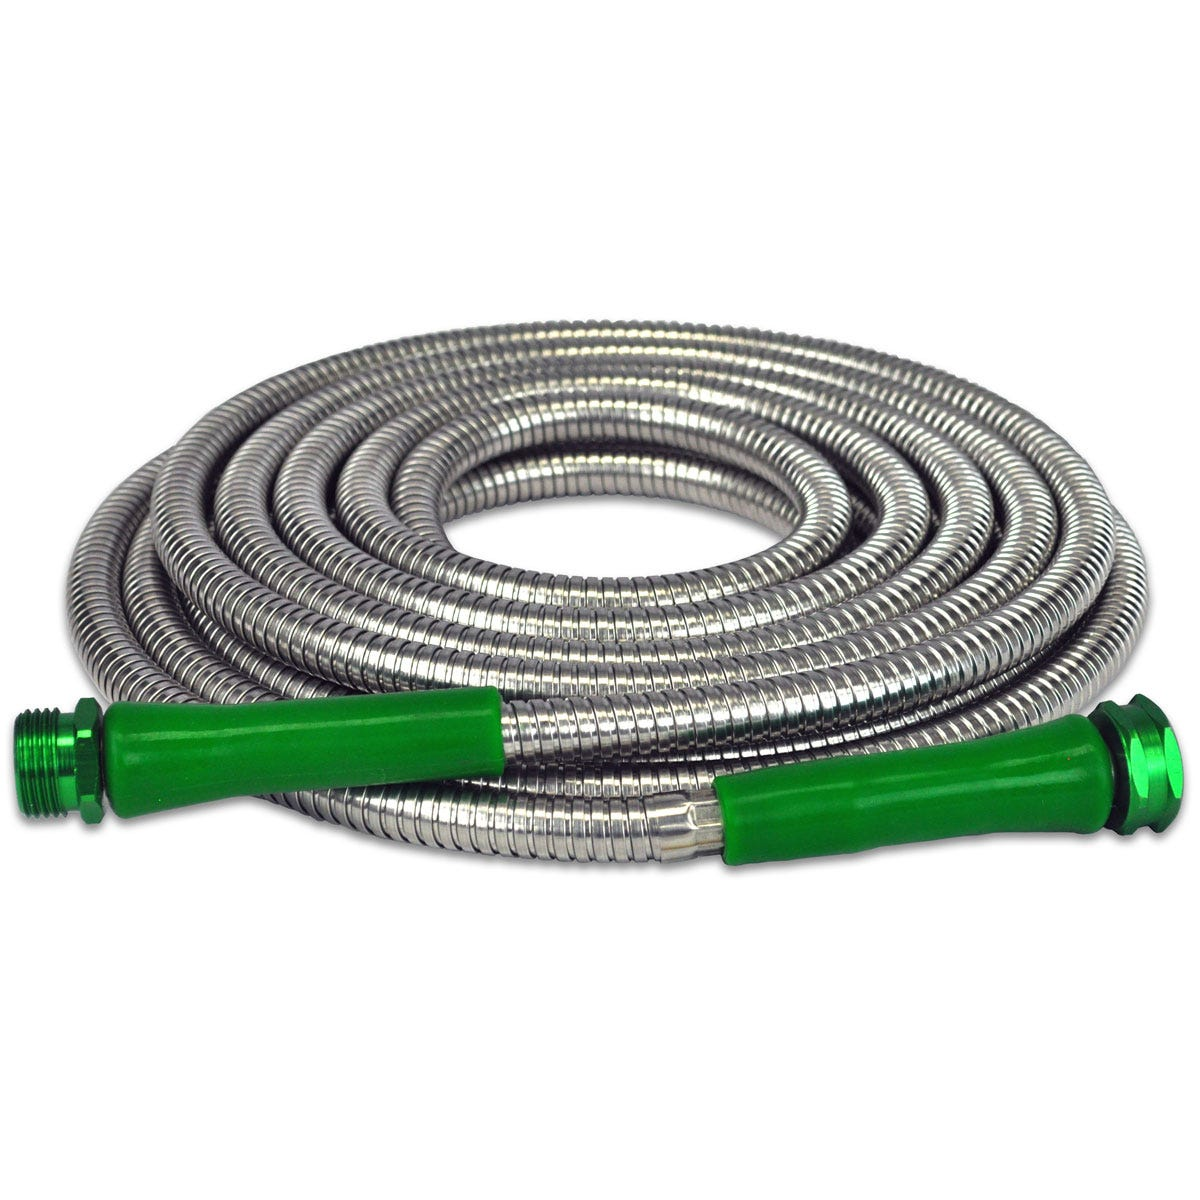 100 39 Metal Garden Hose From Sporty 39 S Tool Shop